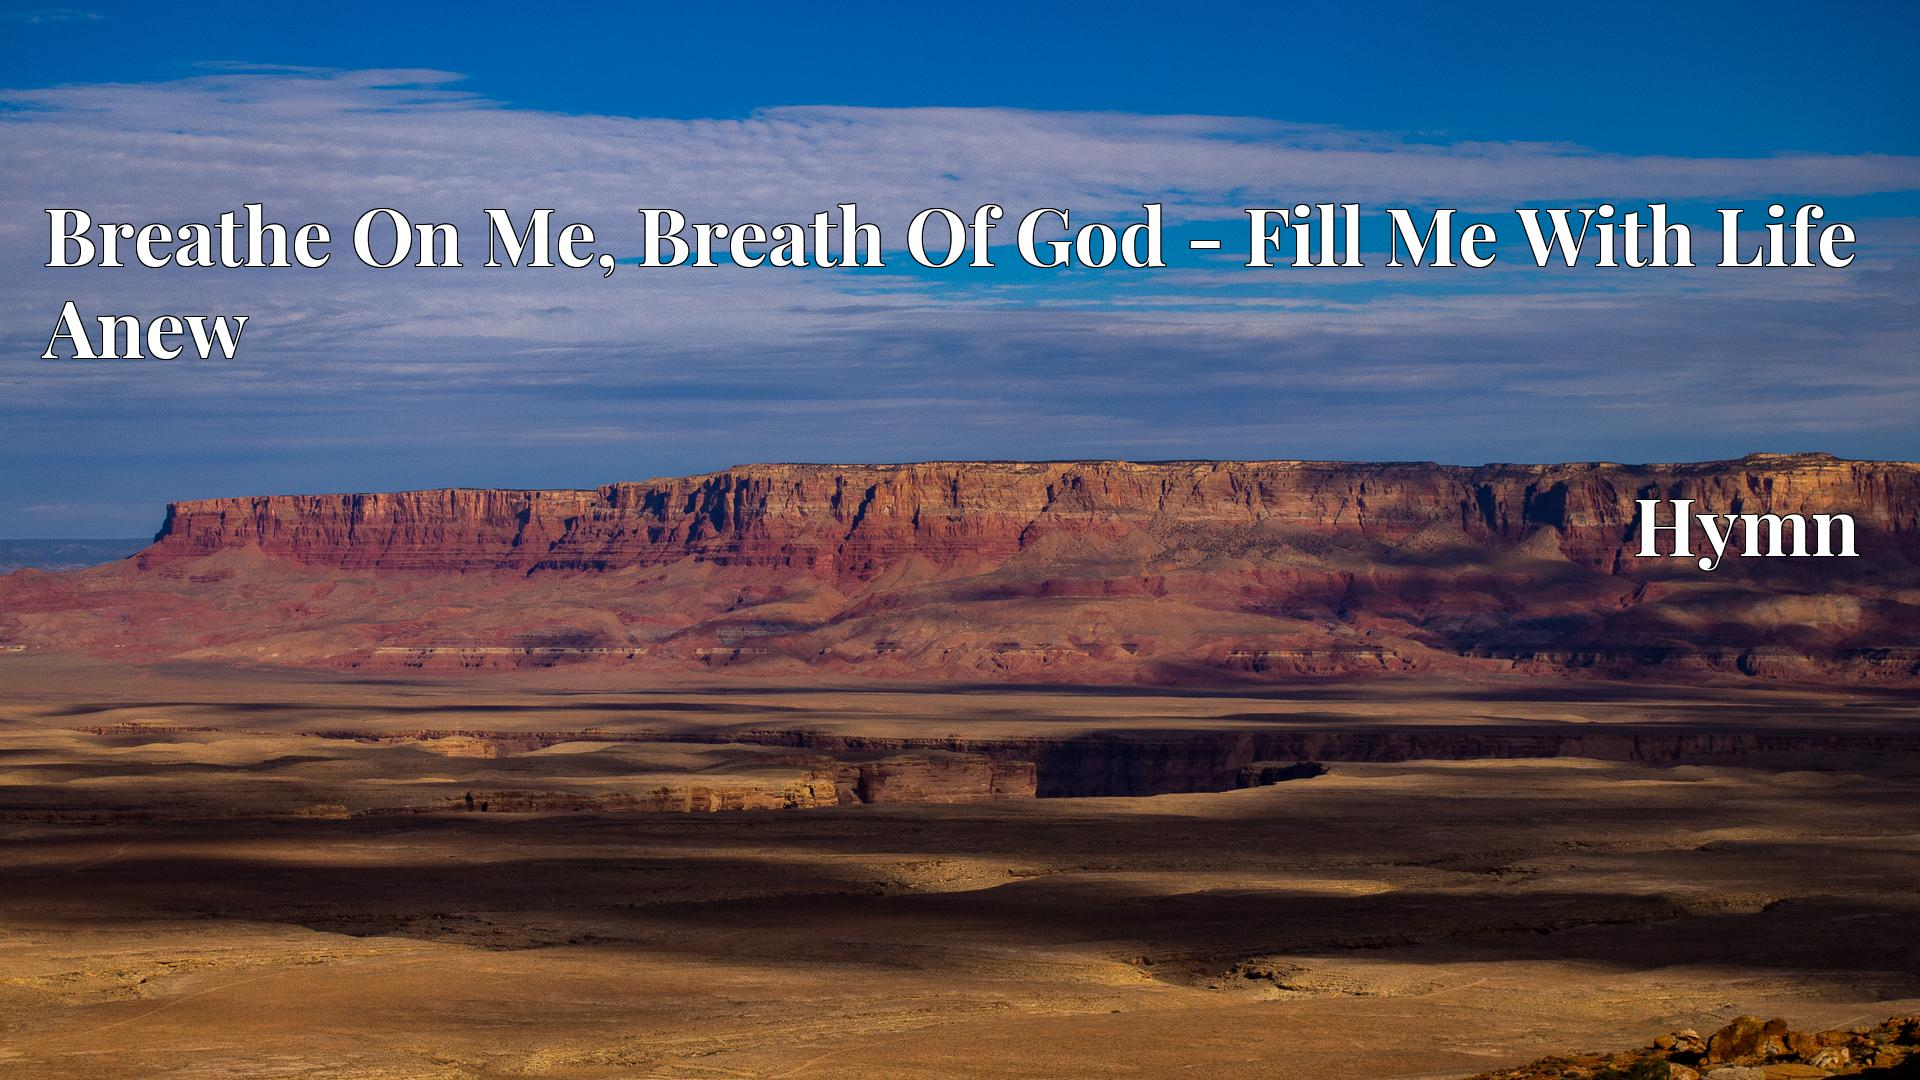 Breathe On Me, Breath Of God - Fill Me With Life Anew - Hymn